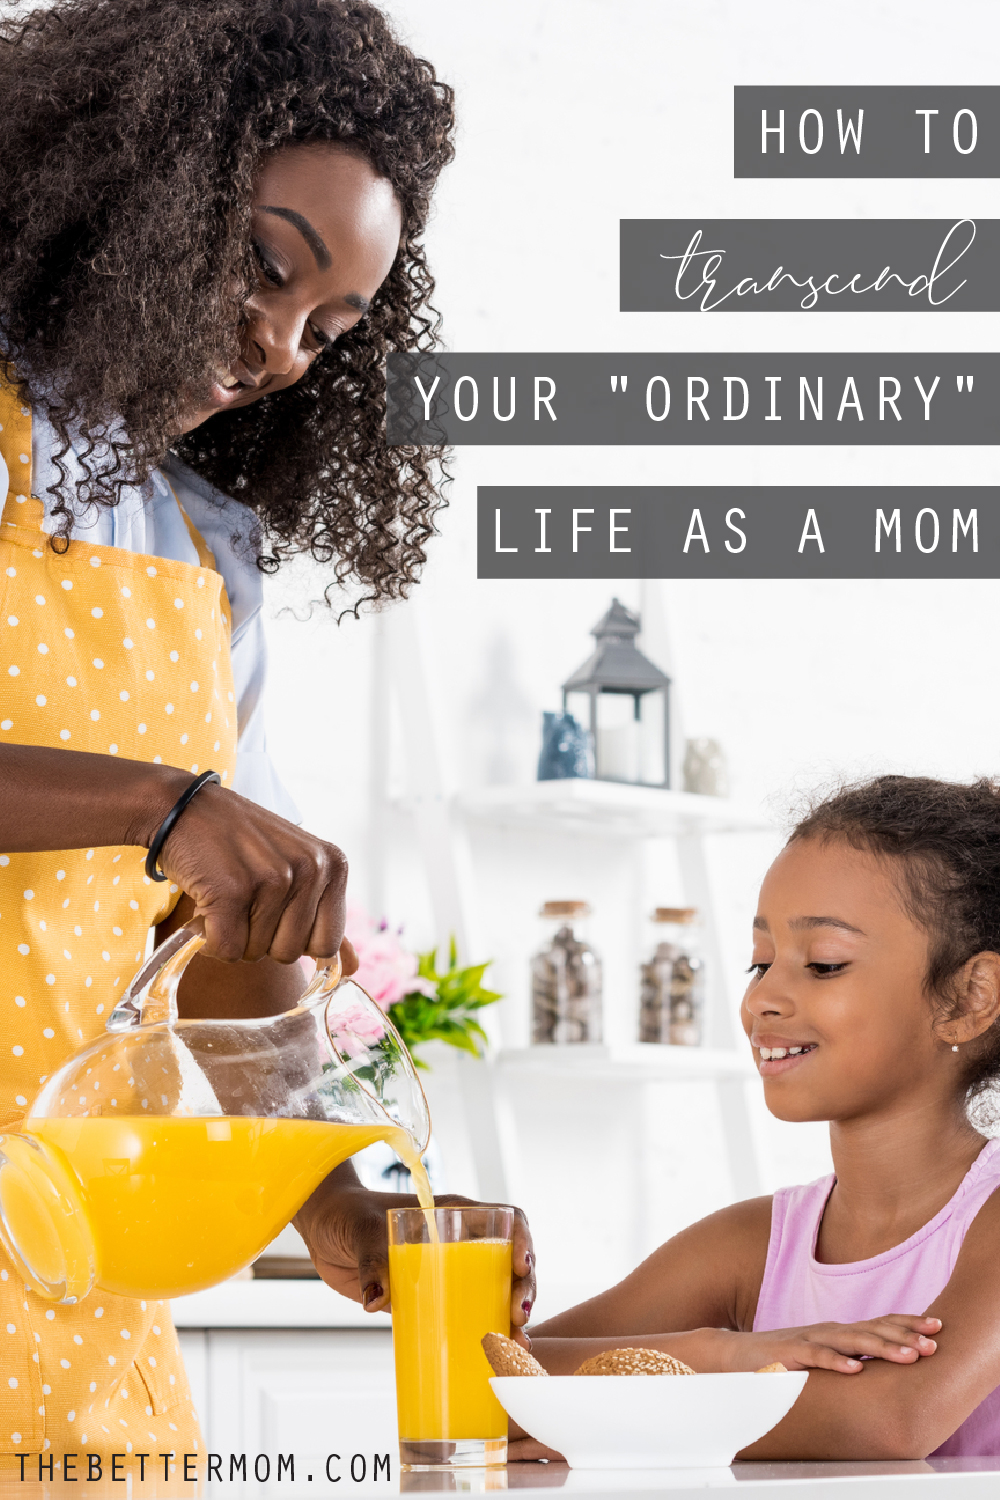 Are you ready to seize a heavenly vision about your day's ordinary and mundane? Here's how to embrace Bible truth that gives life and deep meaning to the work of your hands and your heart as a mom...